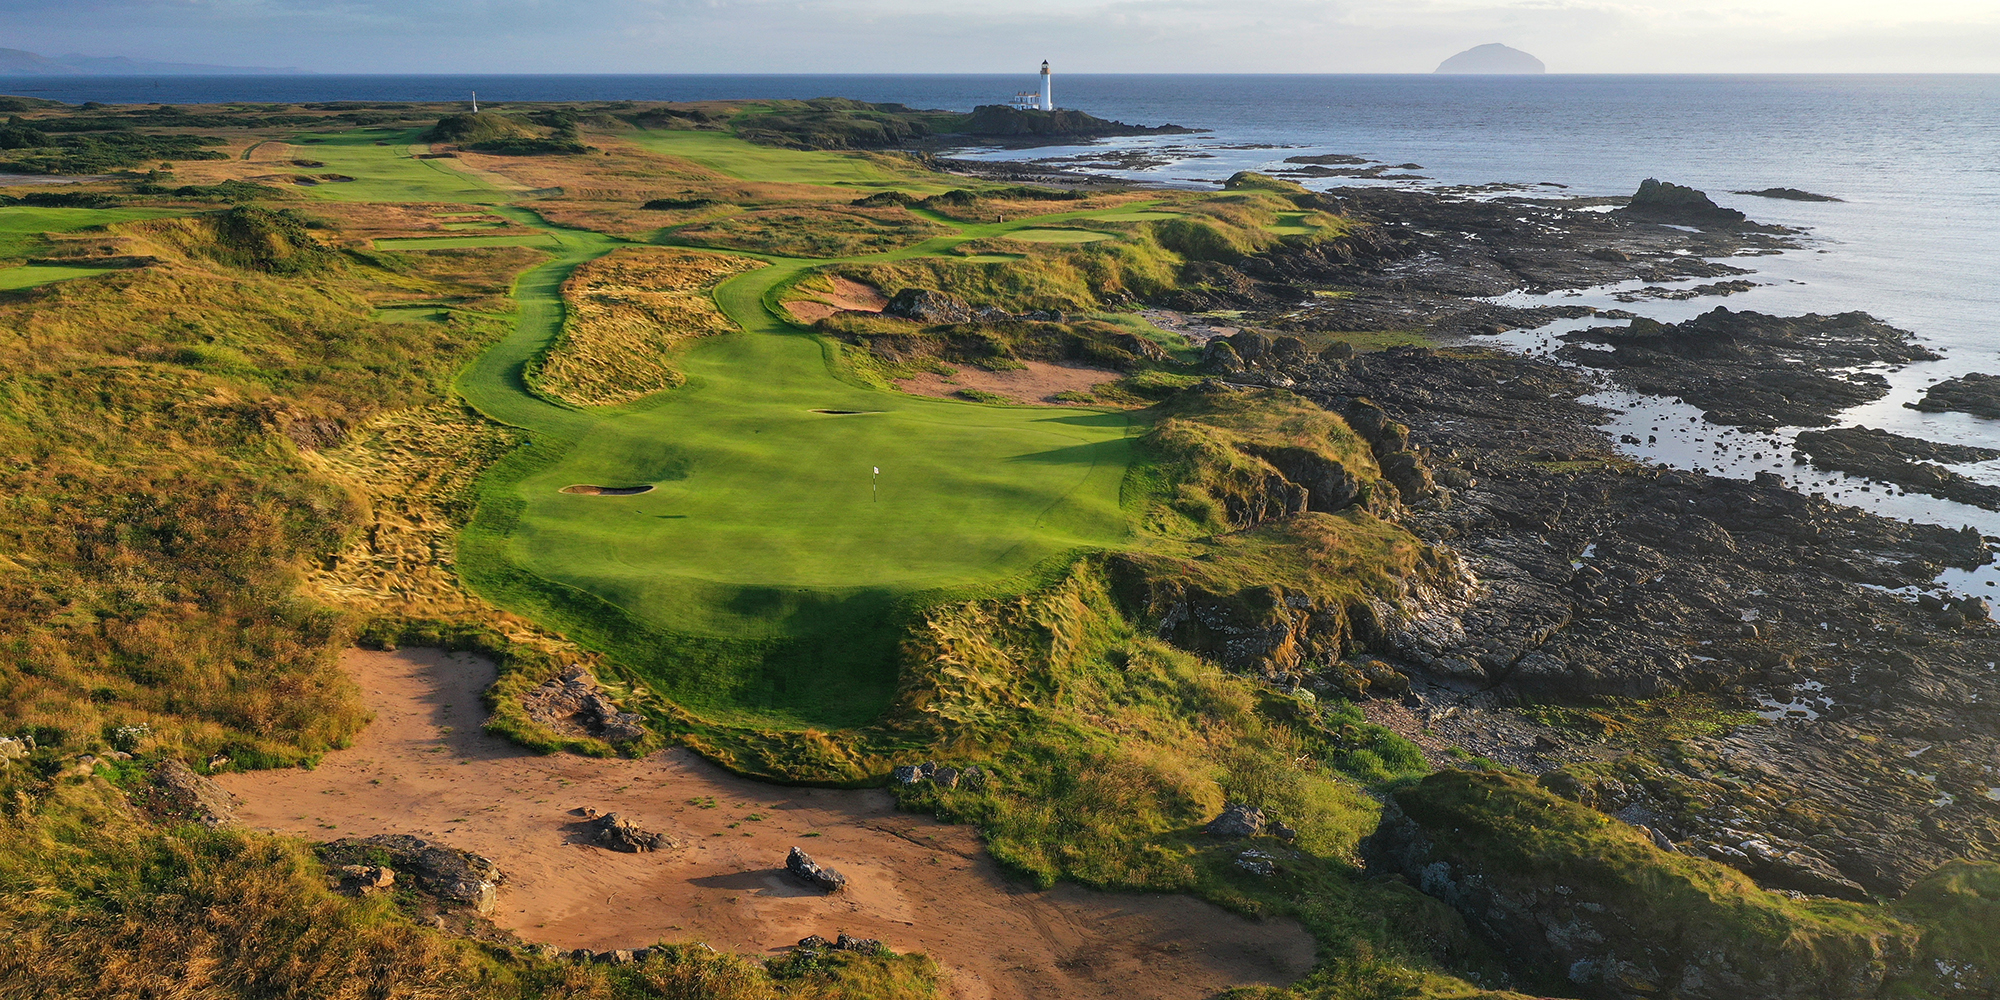 GOLFSelect Escorted Scotland Trip | July 18-31, 2022 | Limited to 20 golfers